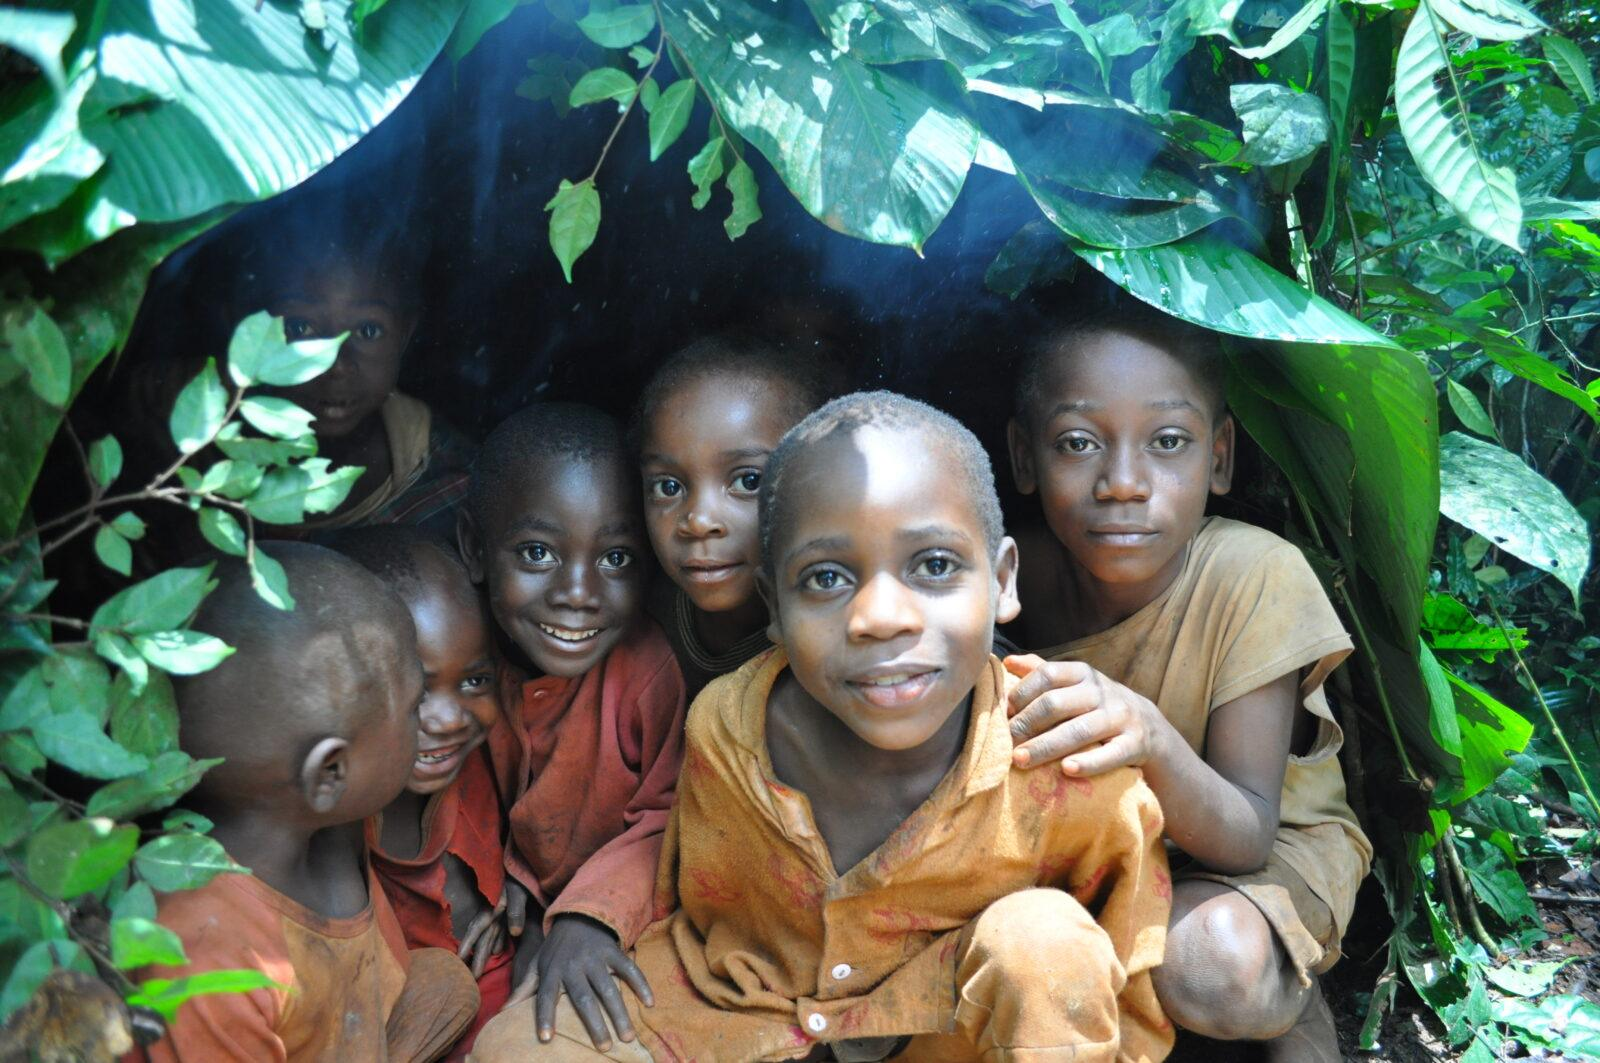 ucla congo basin institute receives $1 million from pritzker family foundation